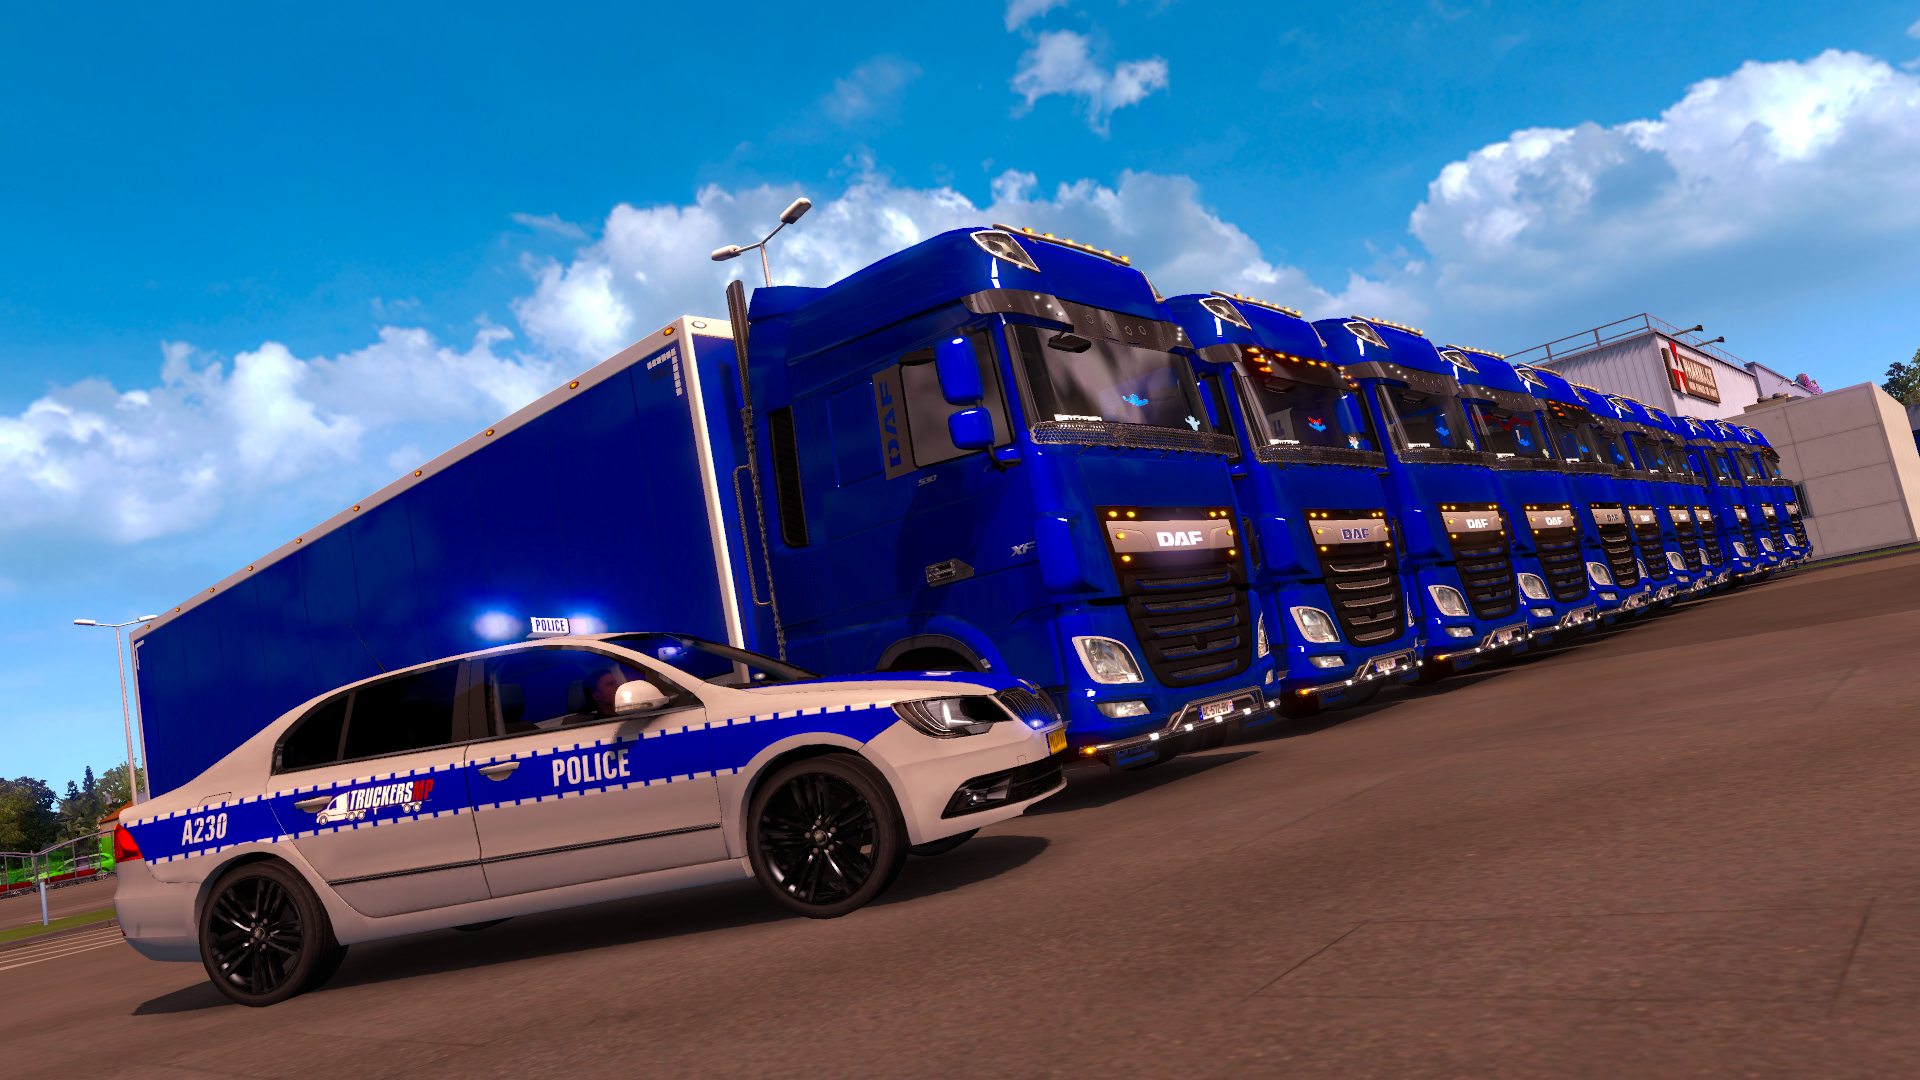 ets2_20181213_205515_00.png